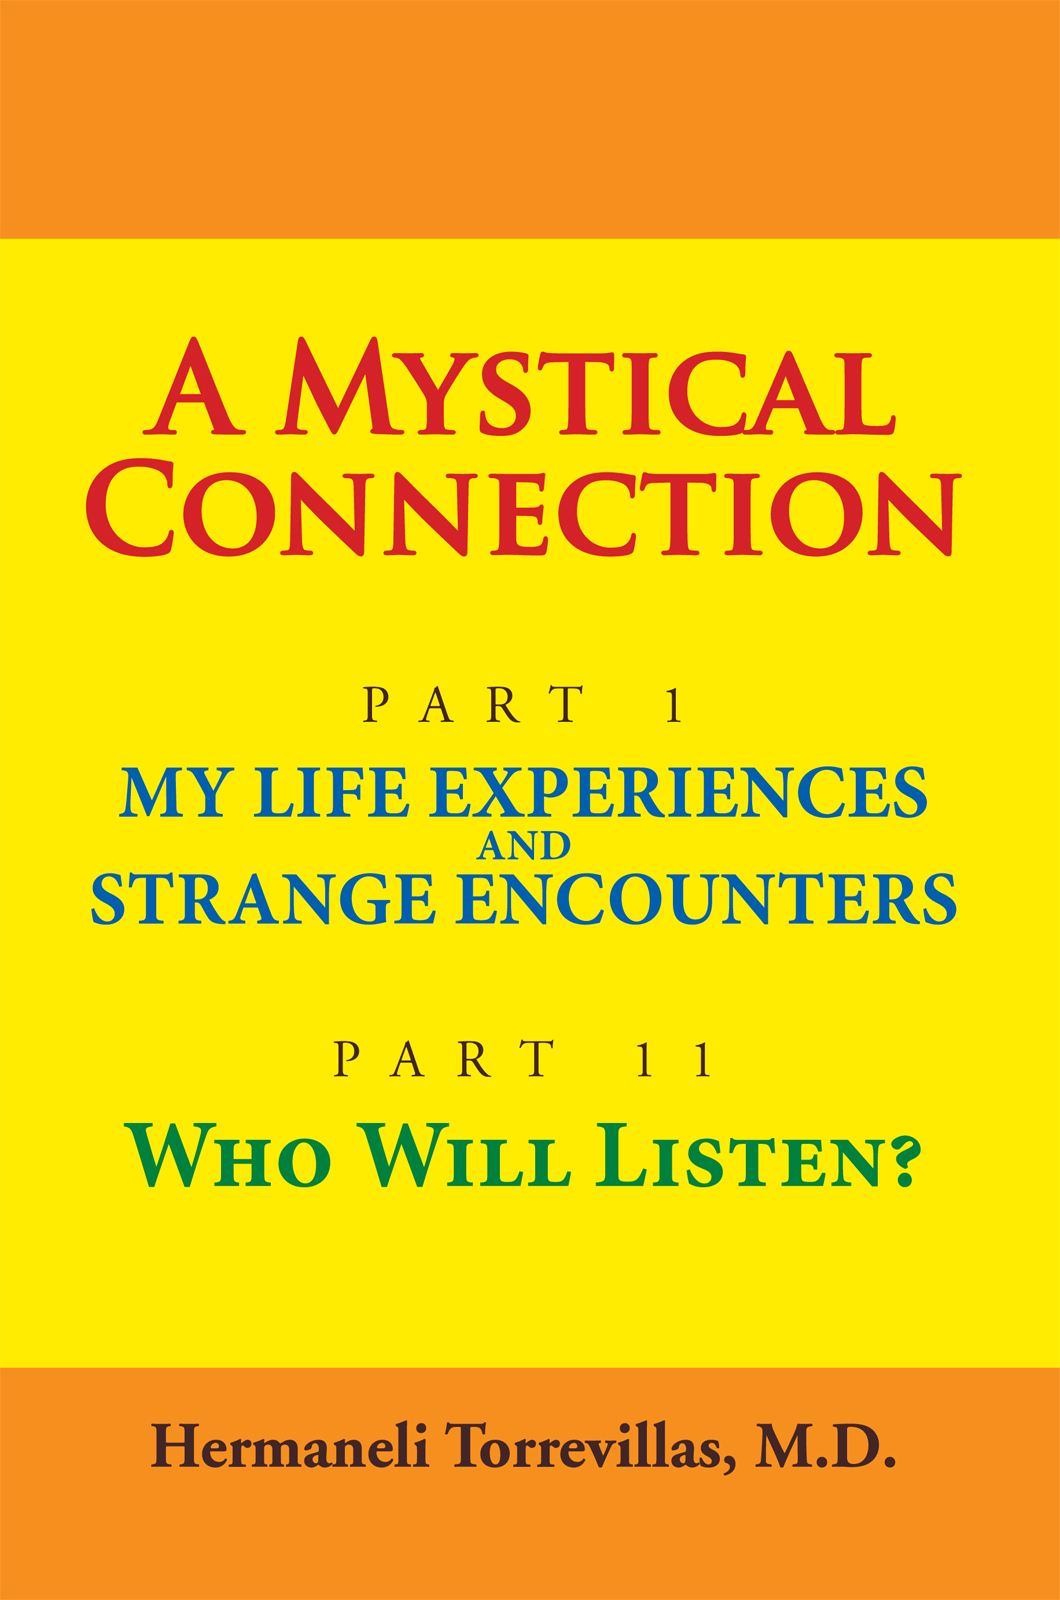 A  MYSTICAL CONNECTION